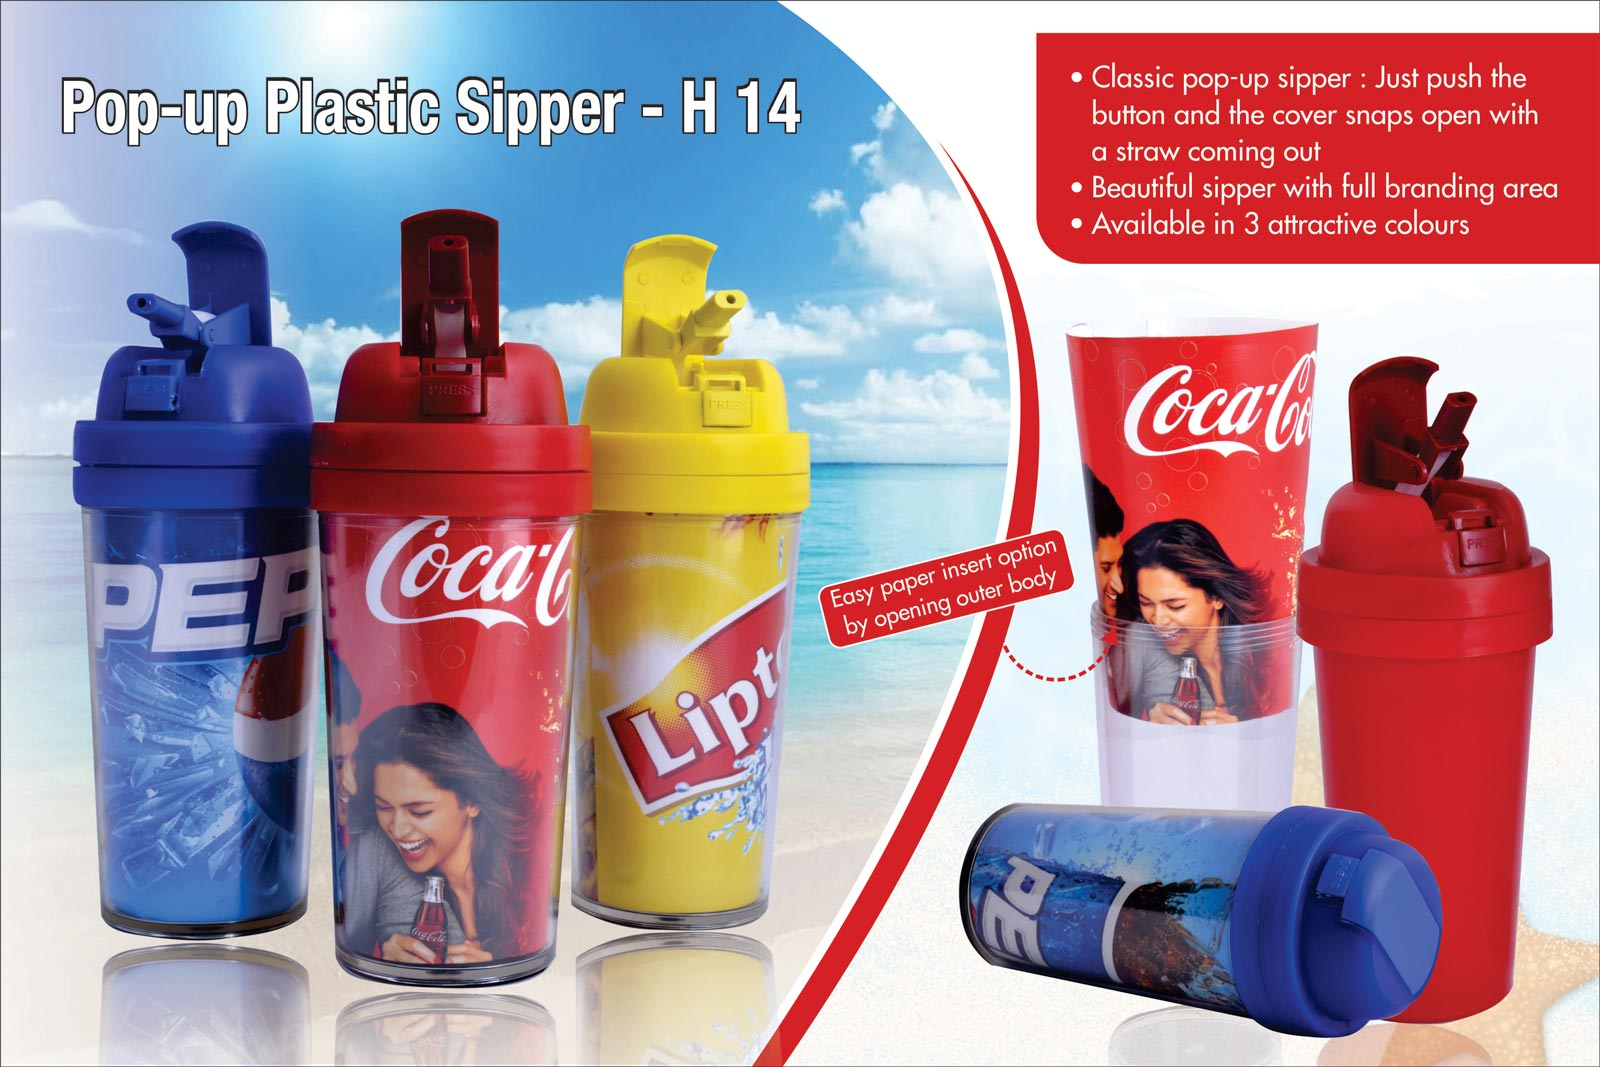 H14 - Pop-up plastic sipper (with paper insert option)